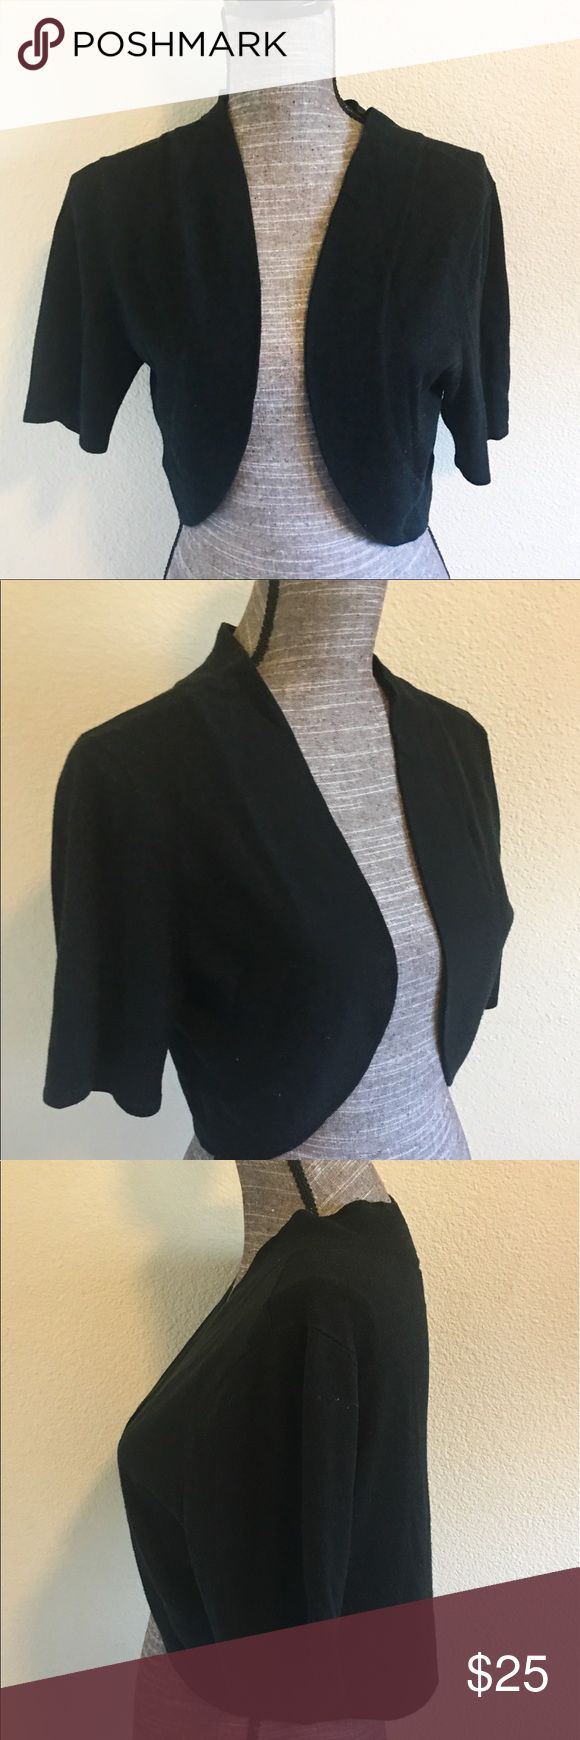 Motherhood Open Crop Cardigan Sweater Motherhood Open Crop Cardigan Sweater  Size: L Material: 100% polyester   Machine wash: wash cold/ tumble dry low Condition: no rips no stains   ❌no holds ❌no trades (A13) Motherhood Maternity Sweaters